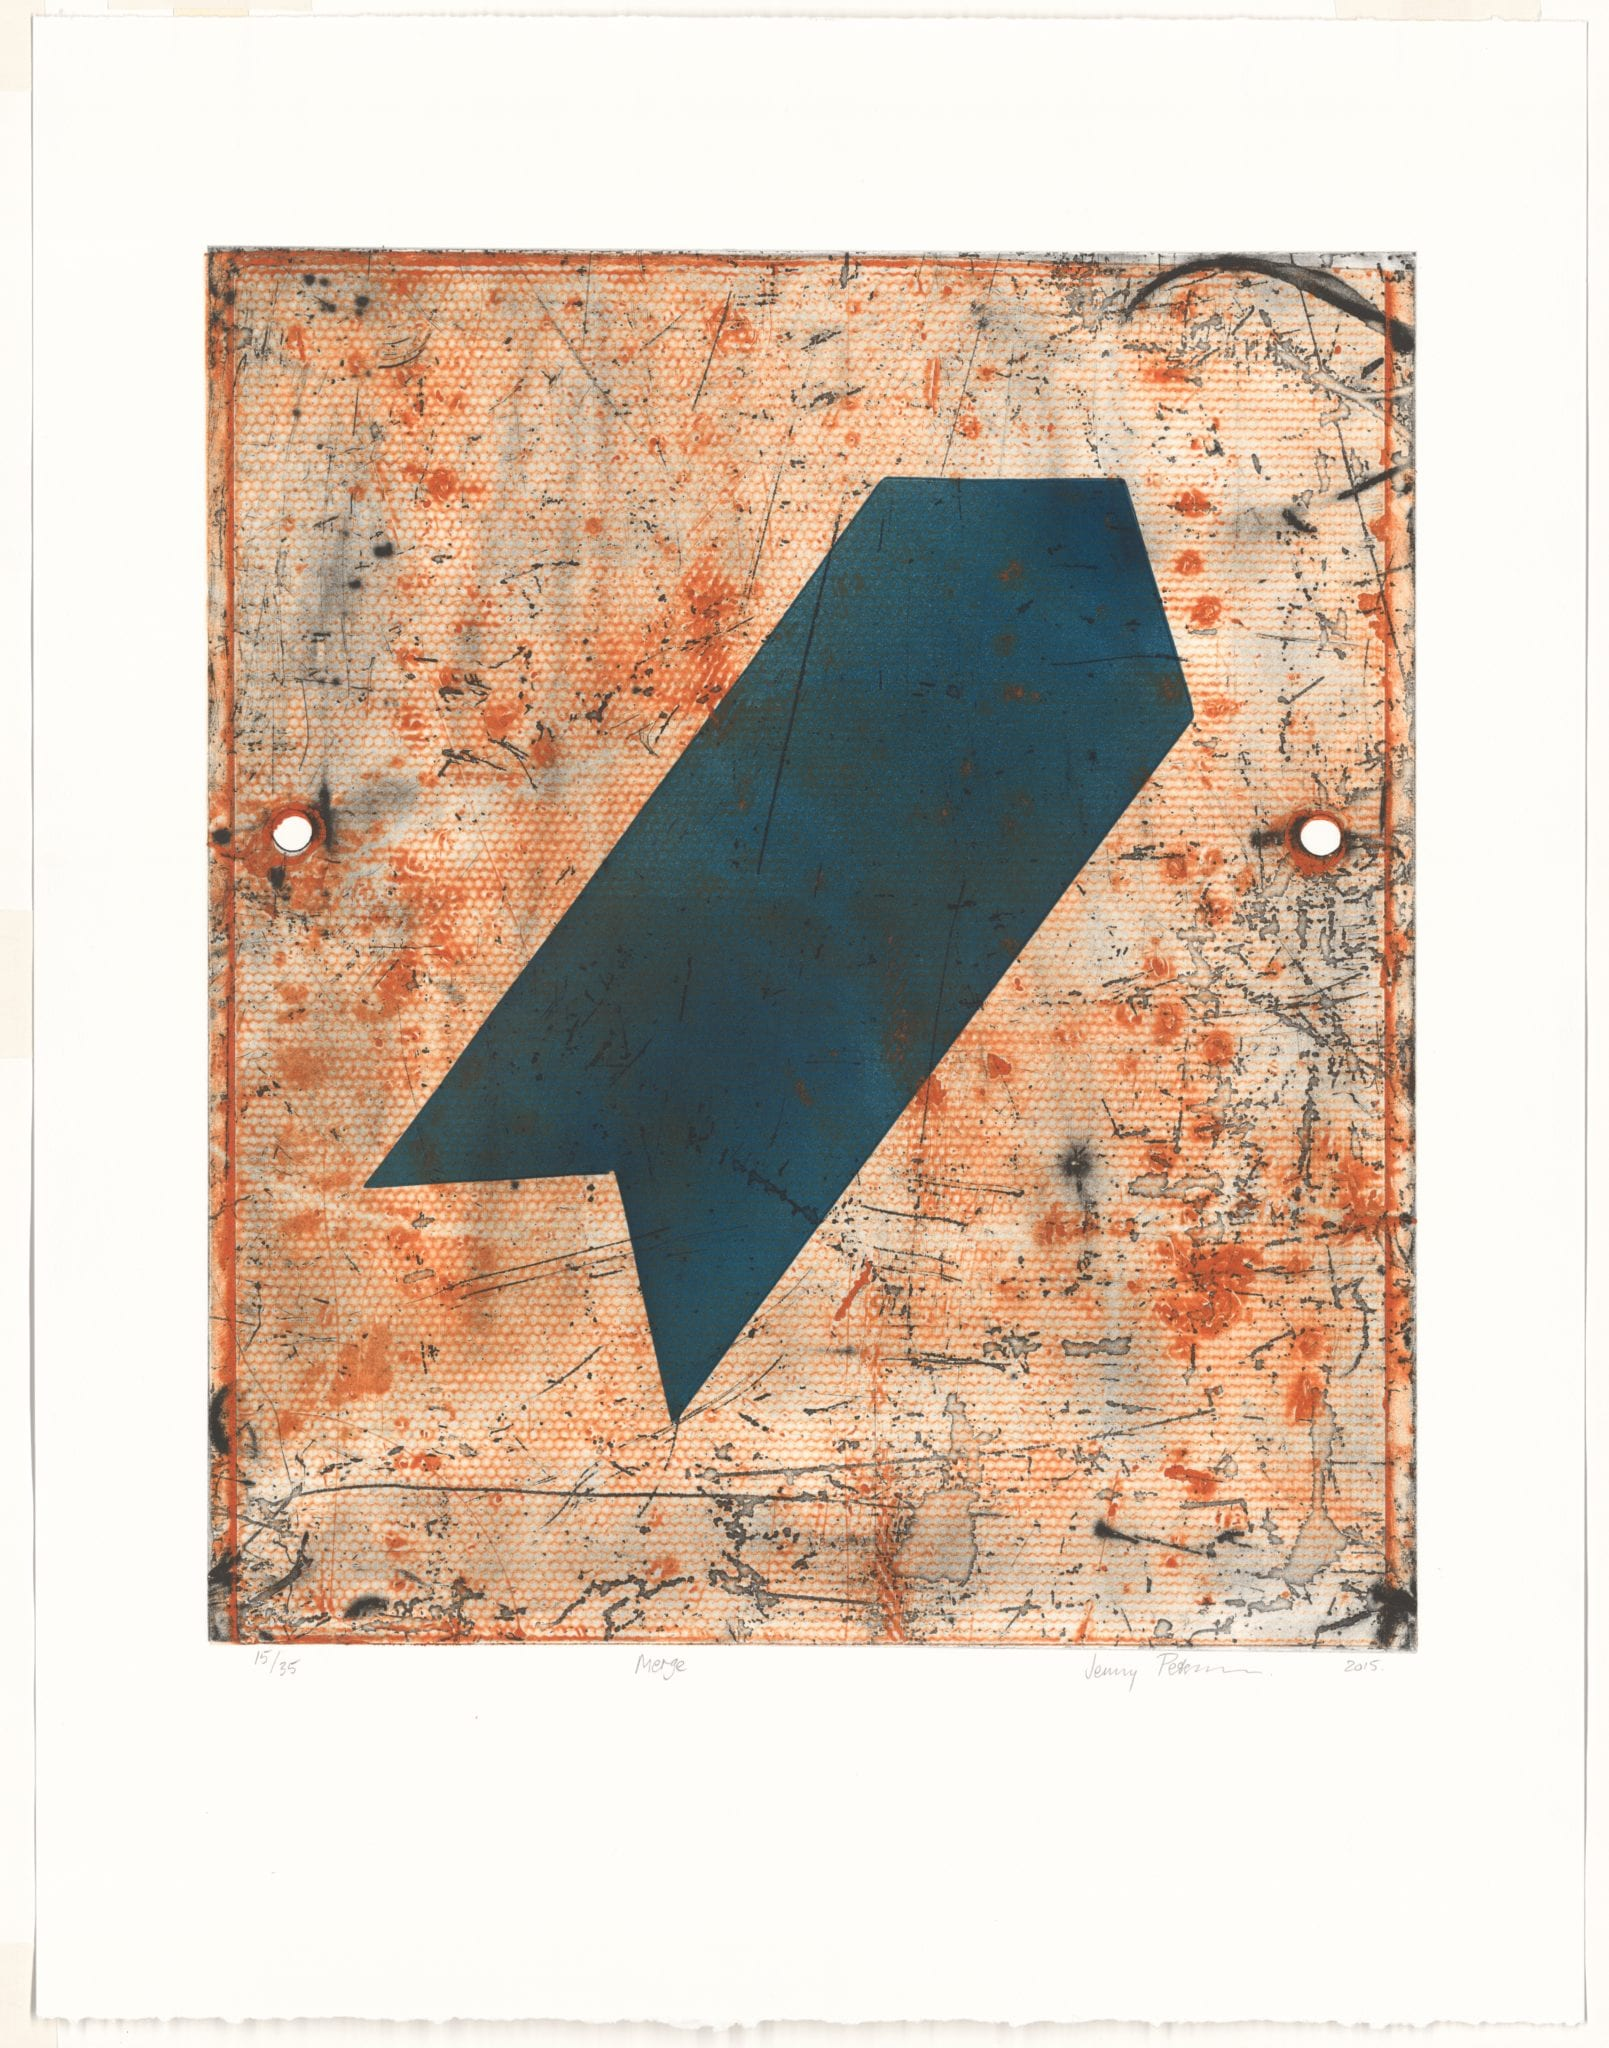 Jenny Peterson, Merge, 2015, Intaglia and relief, 49 x 43 cm image size, Latrobe Regional gallery Collection , Acquired 2015